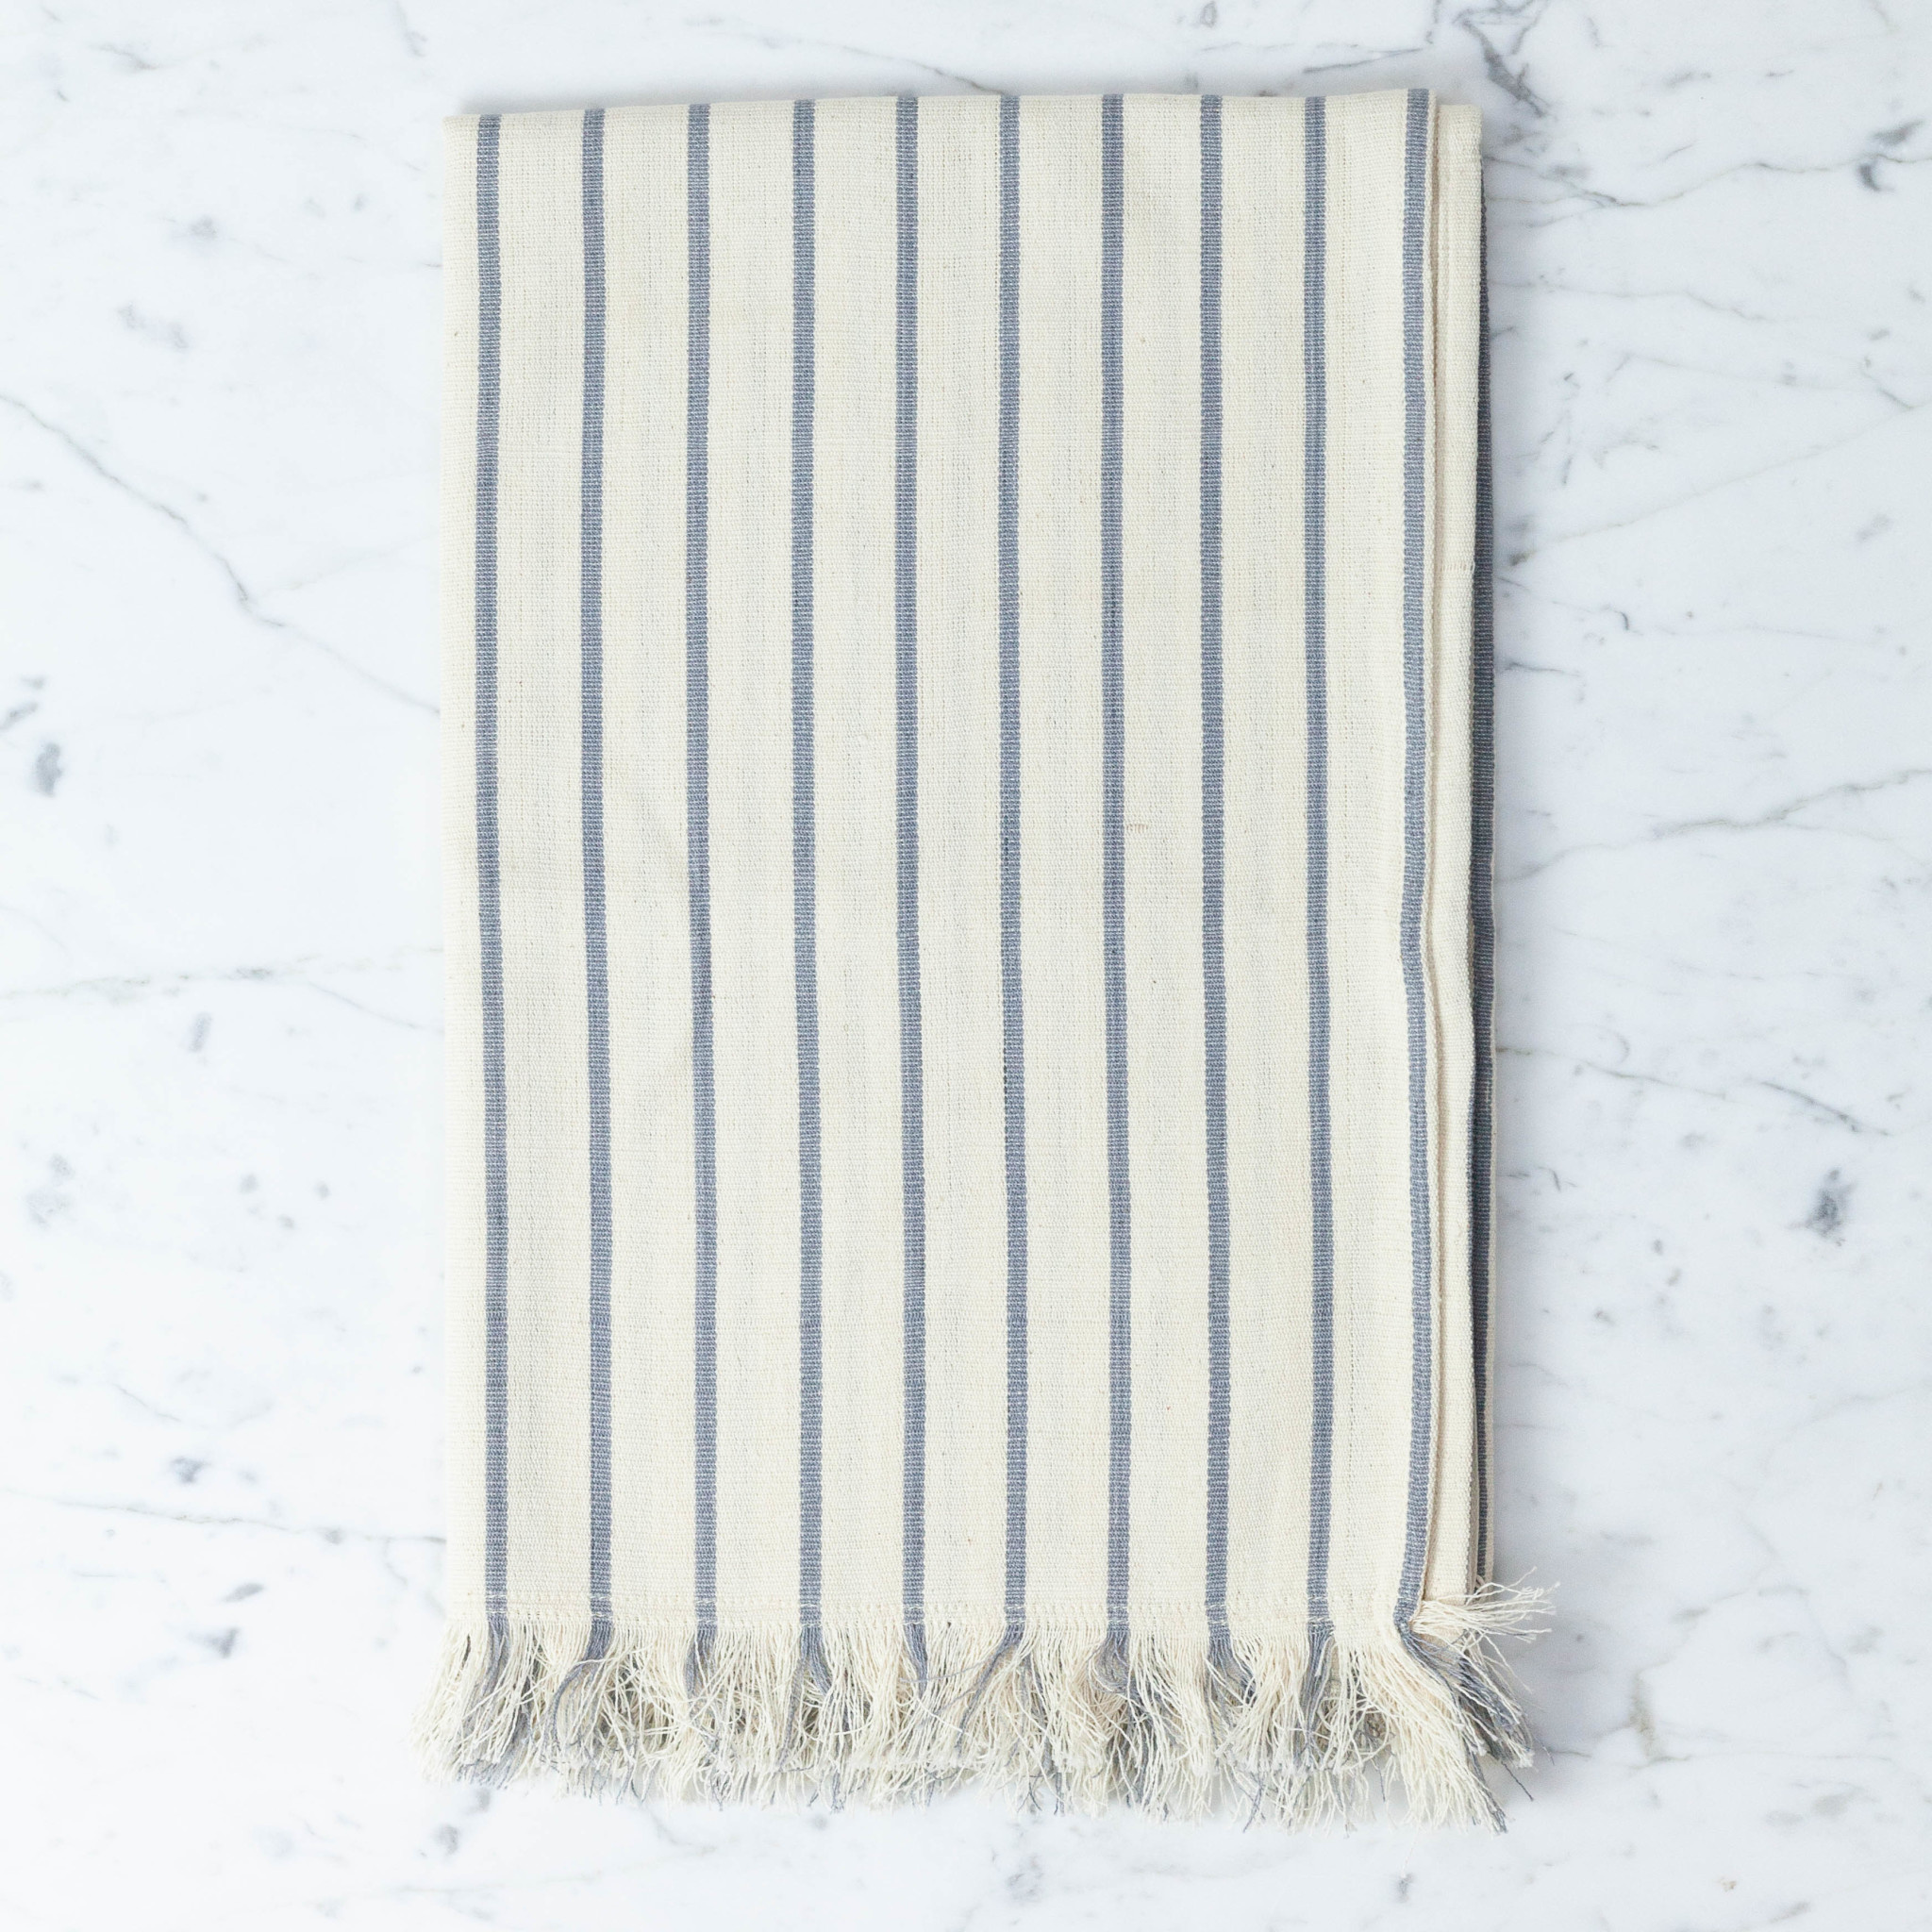 TENSIRA Handwoven Cotton Table Runner with Fringe Edge - Off White with Slim Regular Grey Stripe - 18 x 57 inch